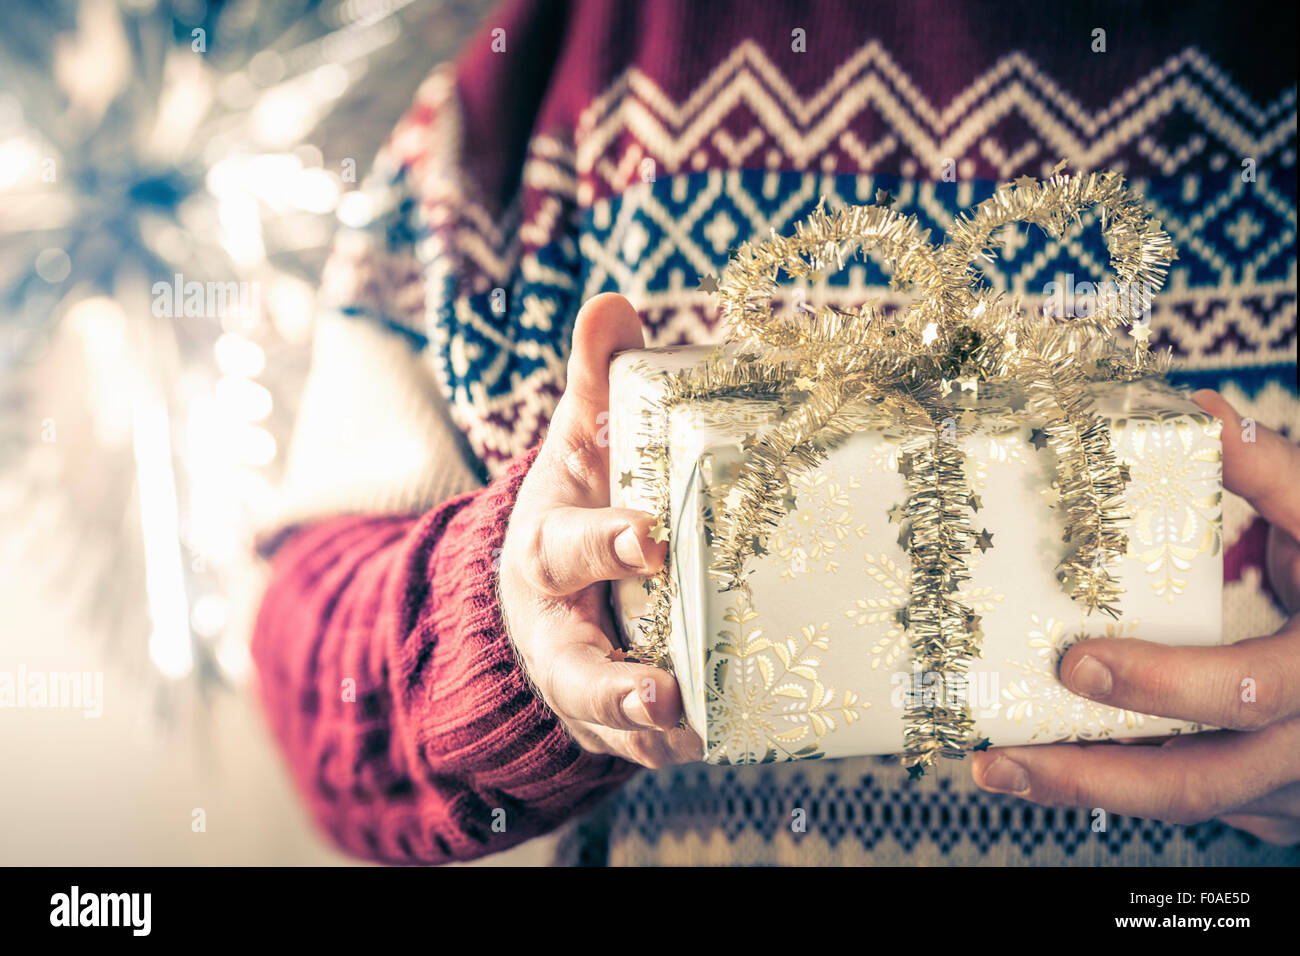 Personne holding christmas gift Photo Stock